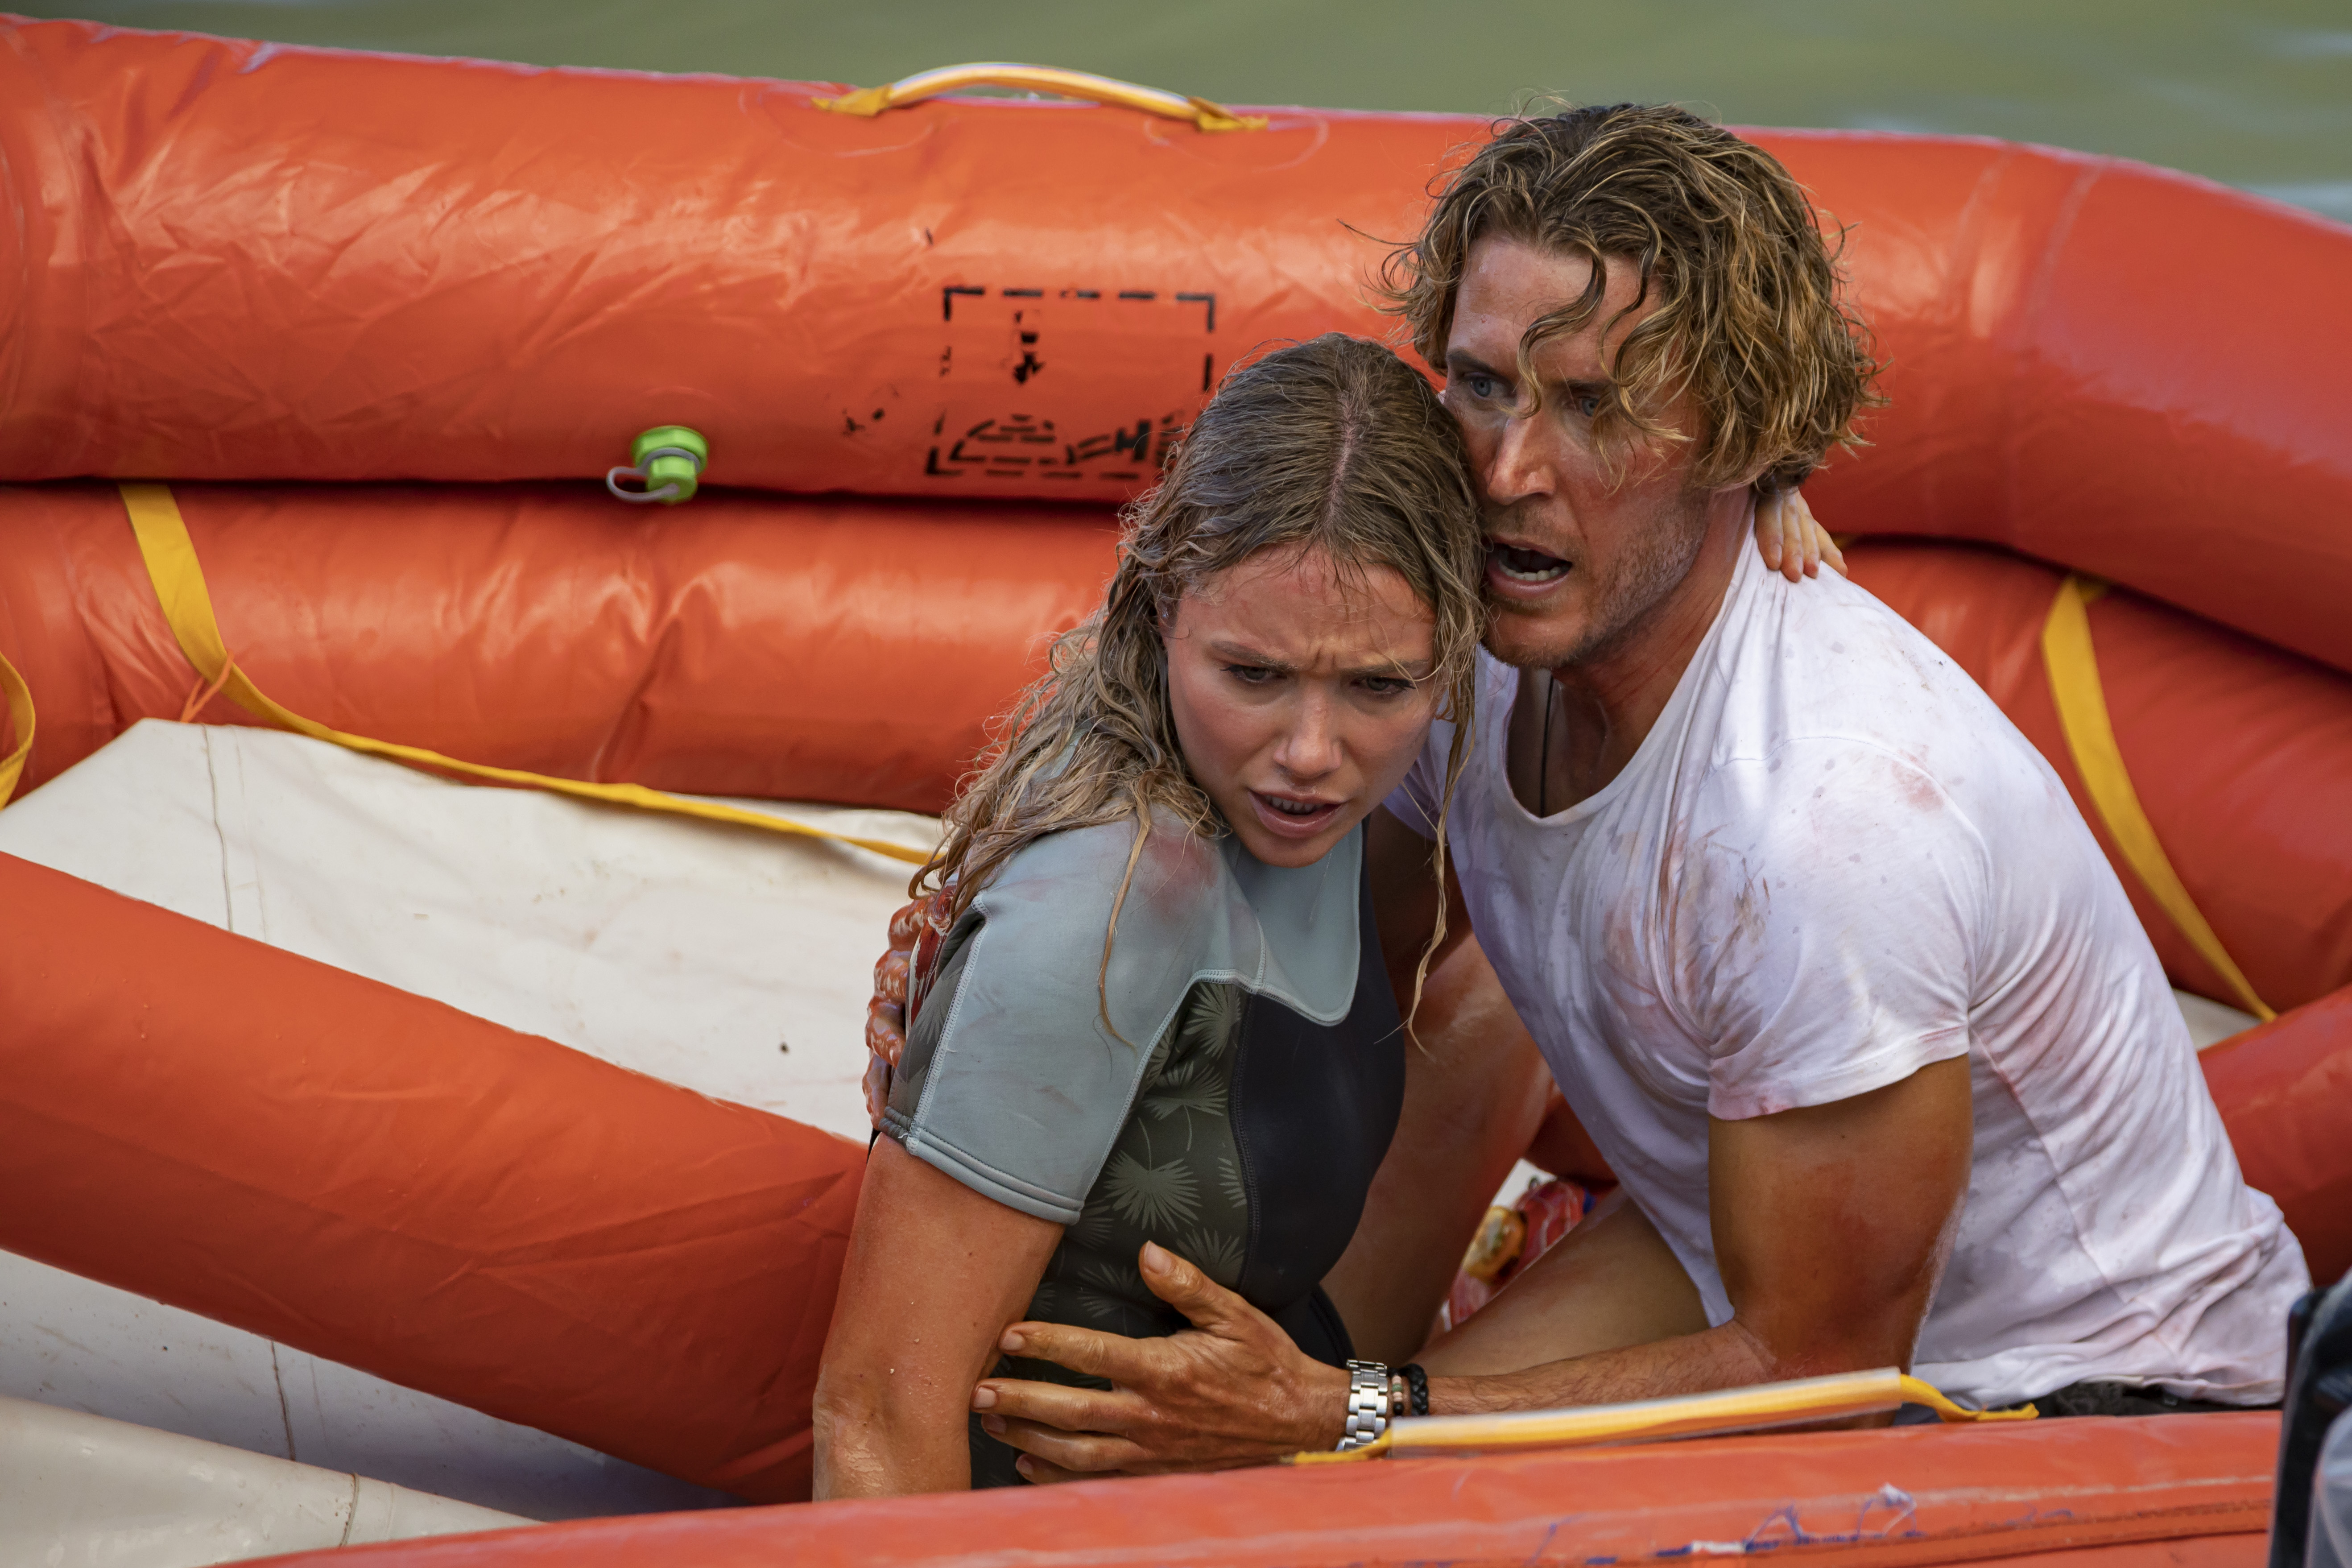 Katrina Bowden and Aaron Jakubenko clutch each other in terror in a lifeboat in Great White